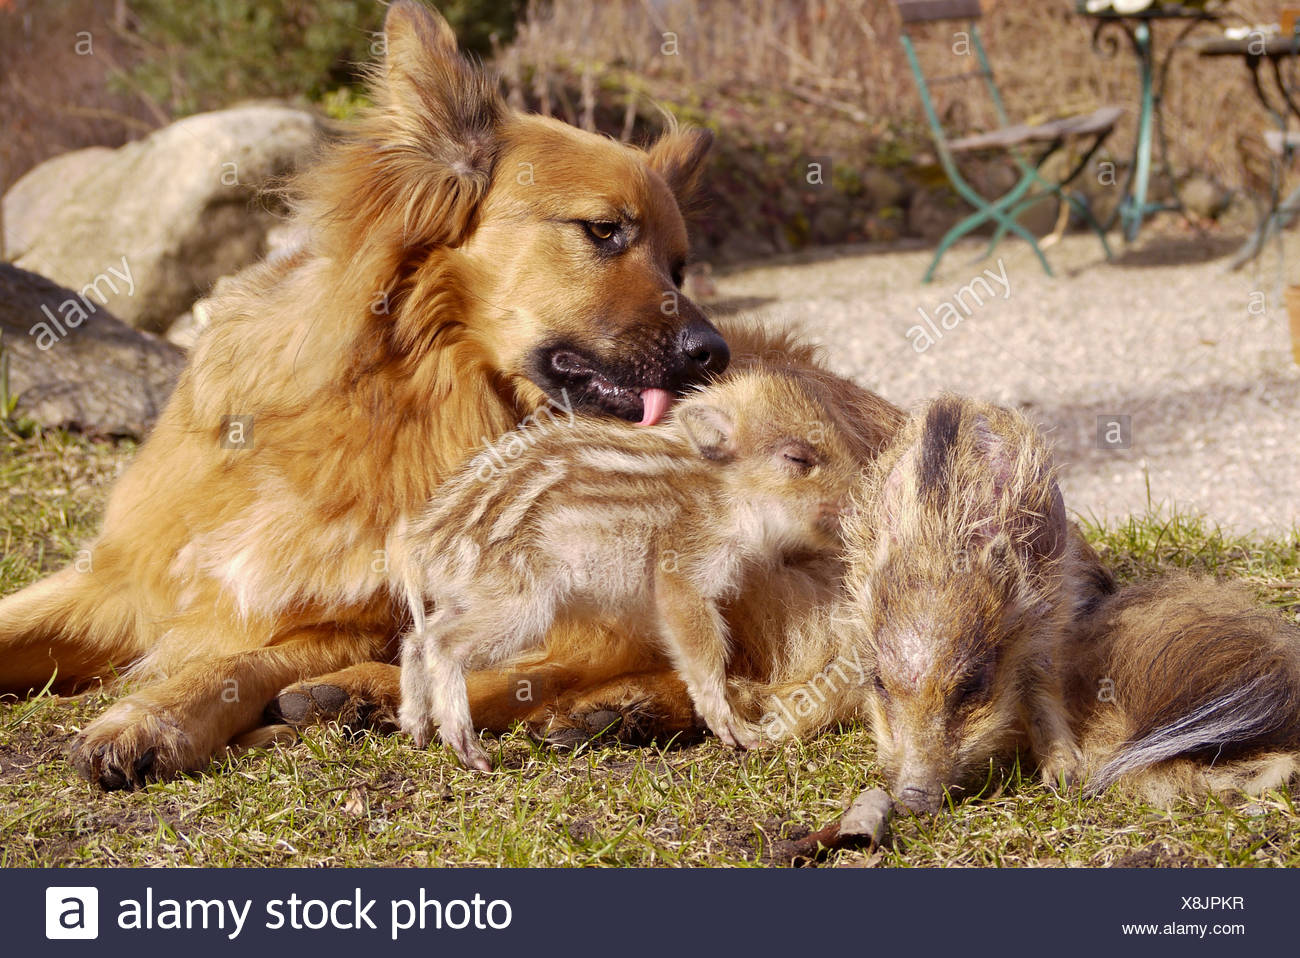 wild boar, pig, wild boar (Sus scrofa), dog playing with piglets, Germany - Stock Image